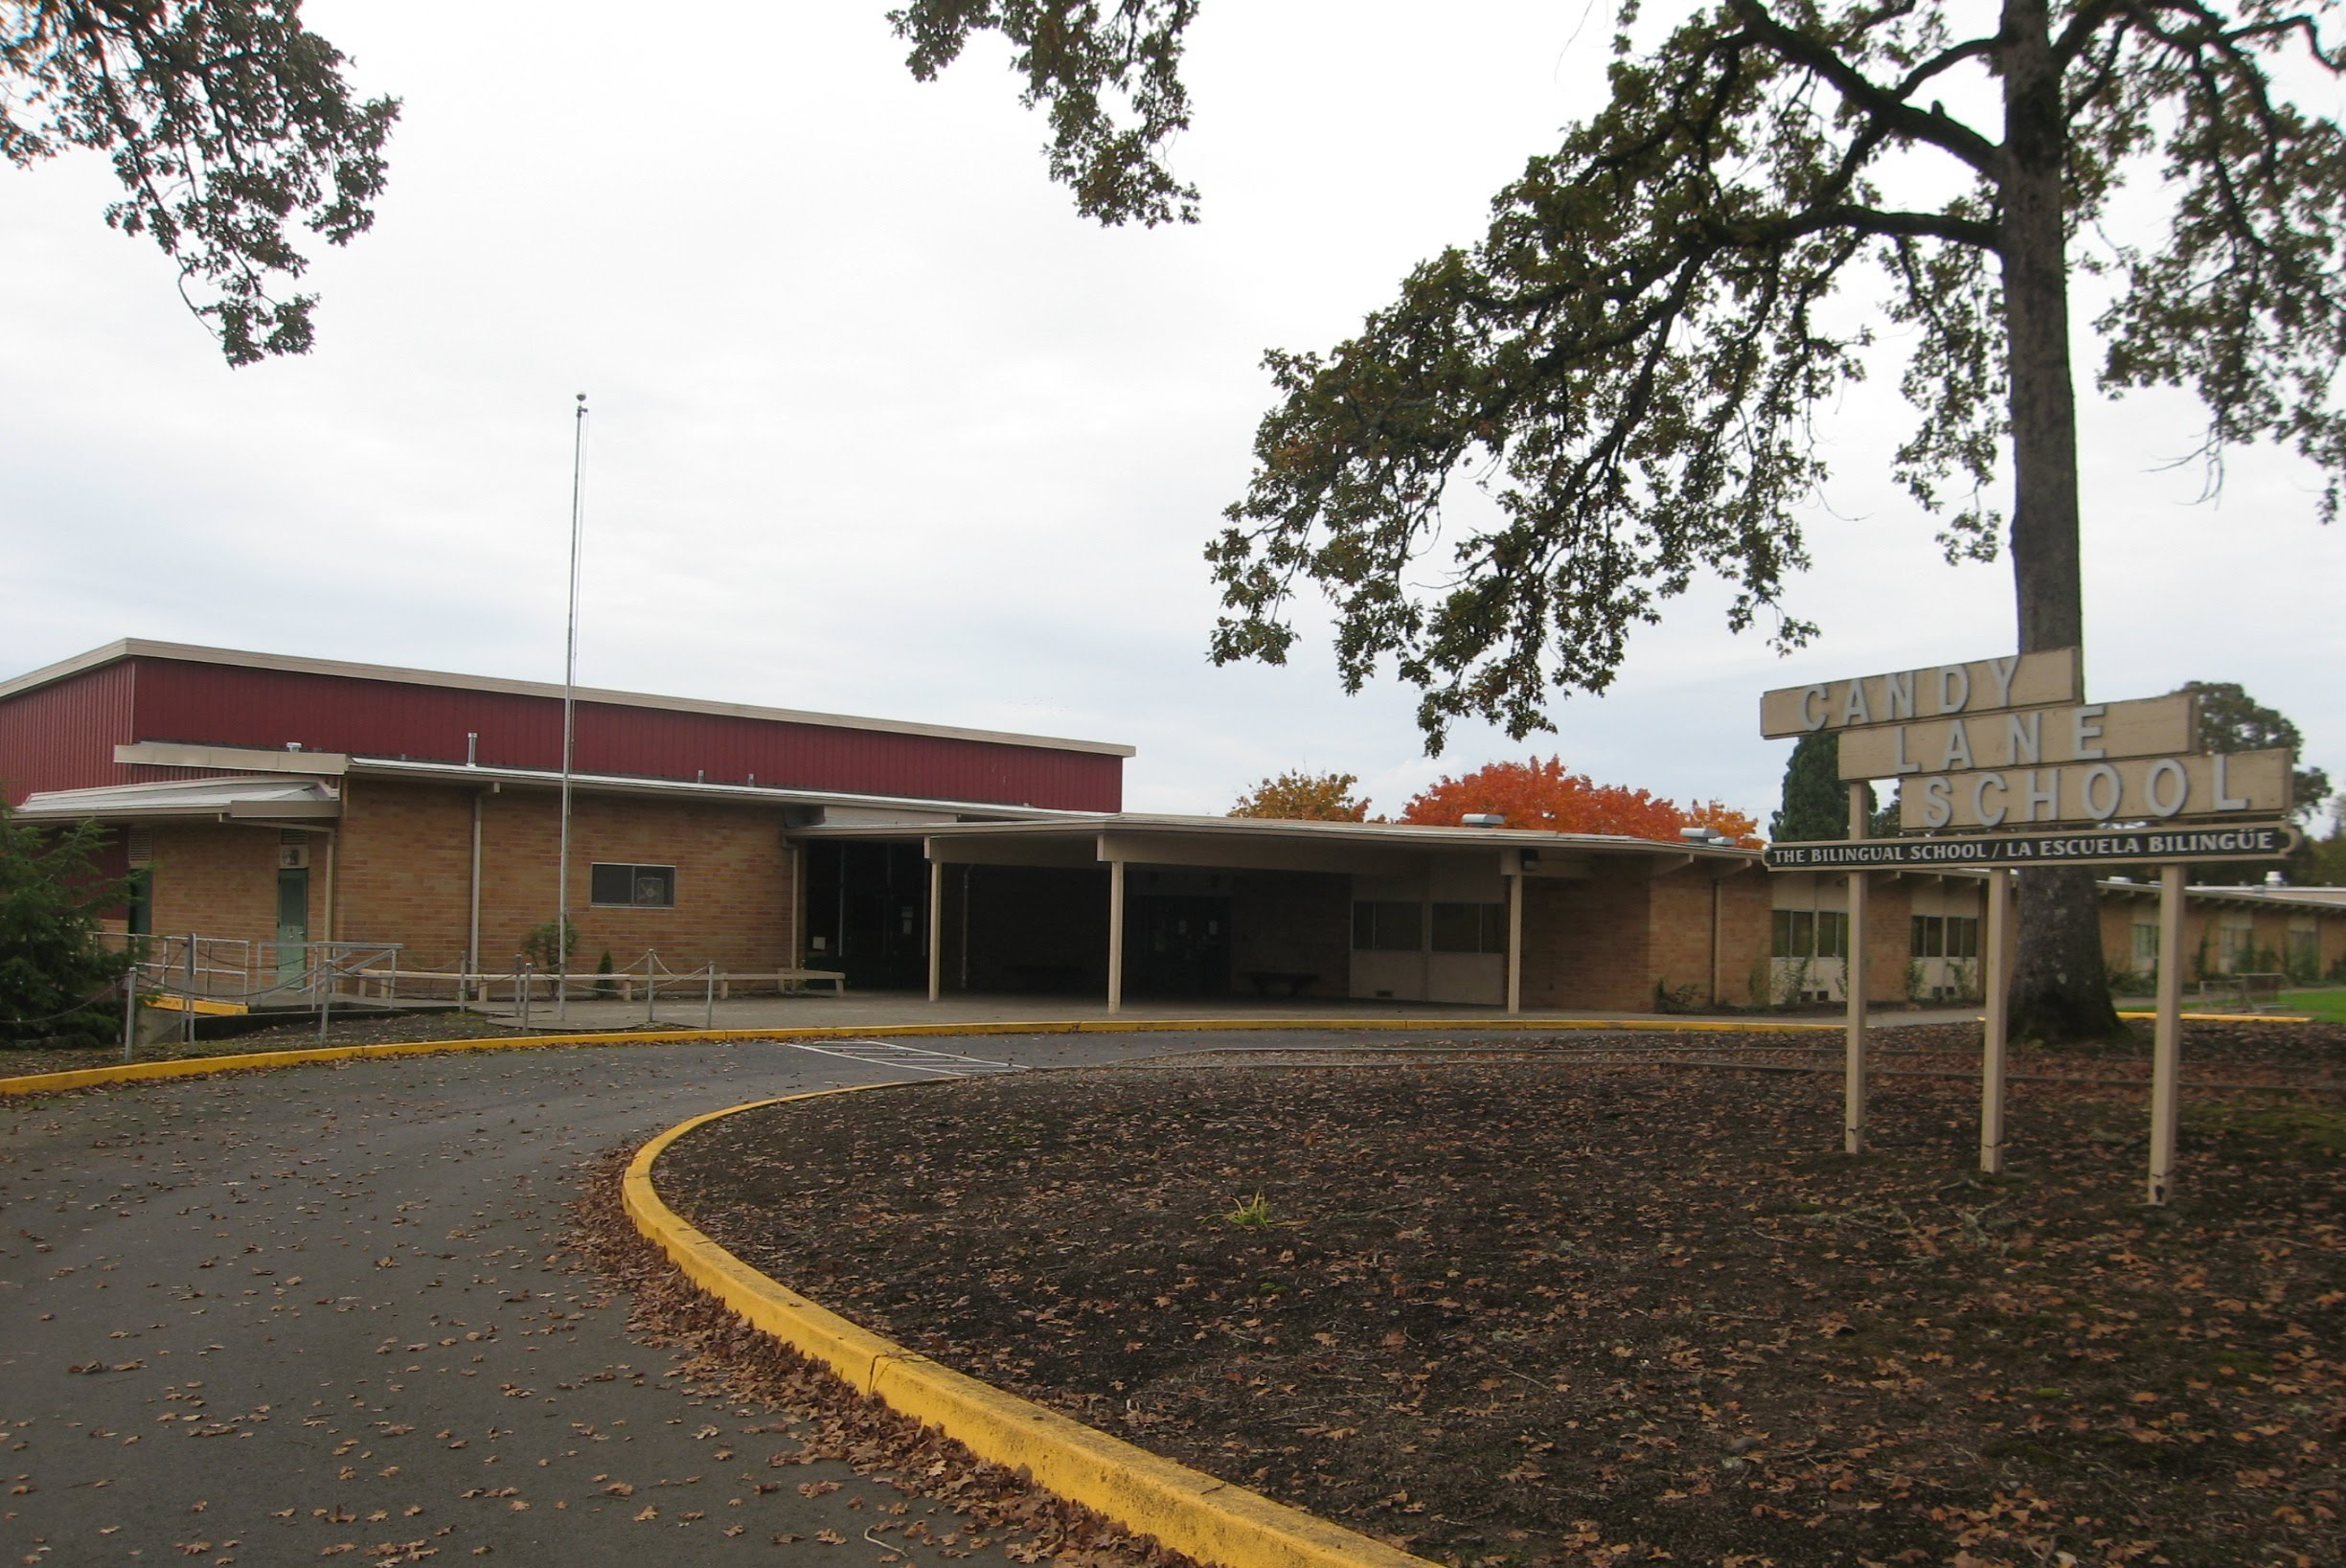 Candy Lane Elementary School